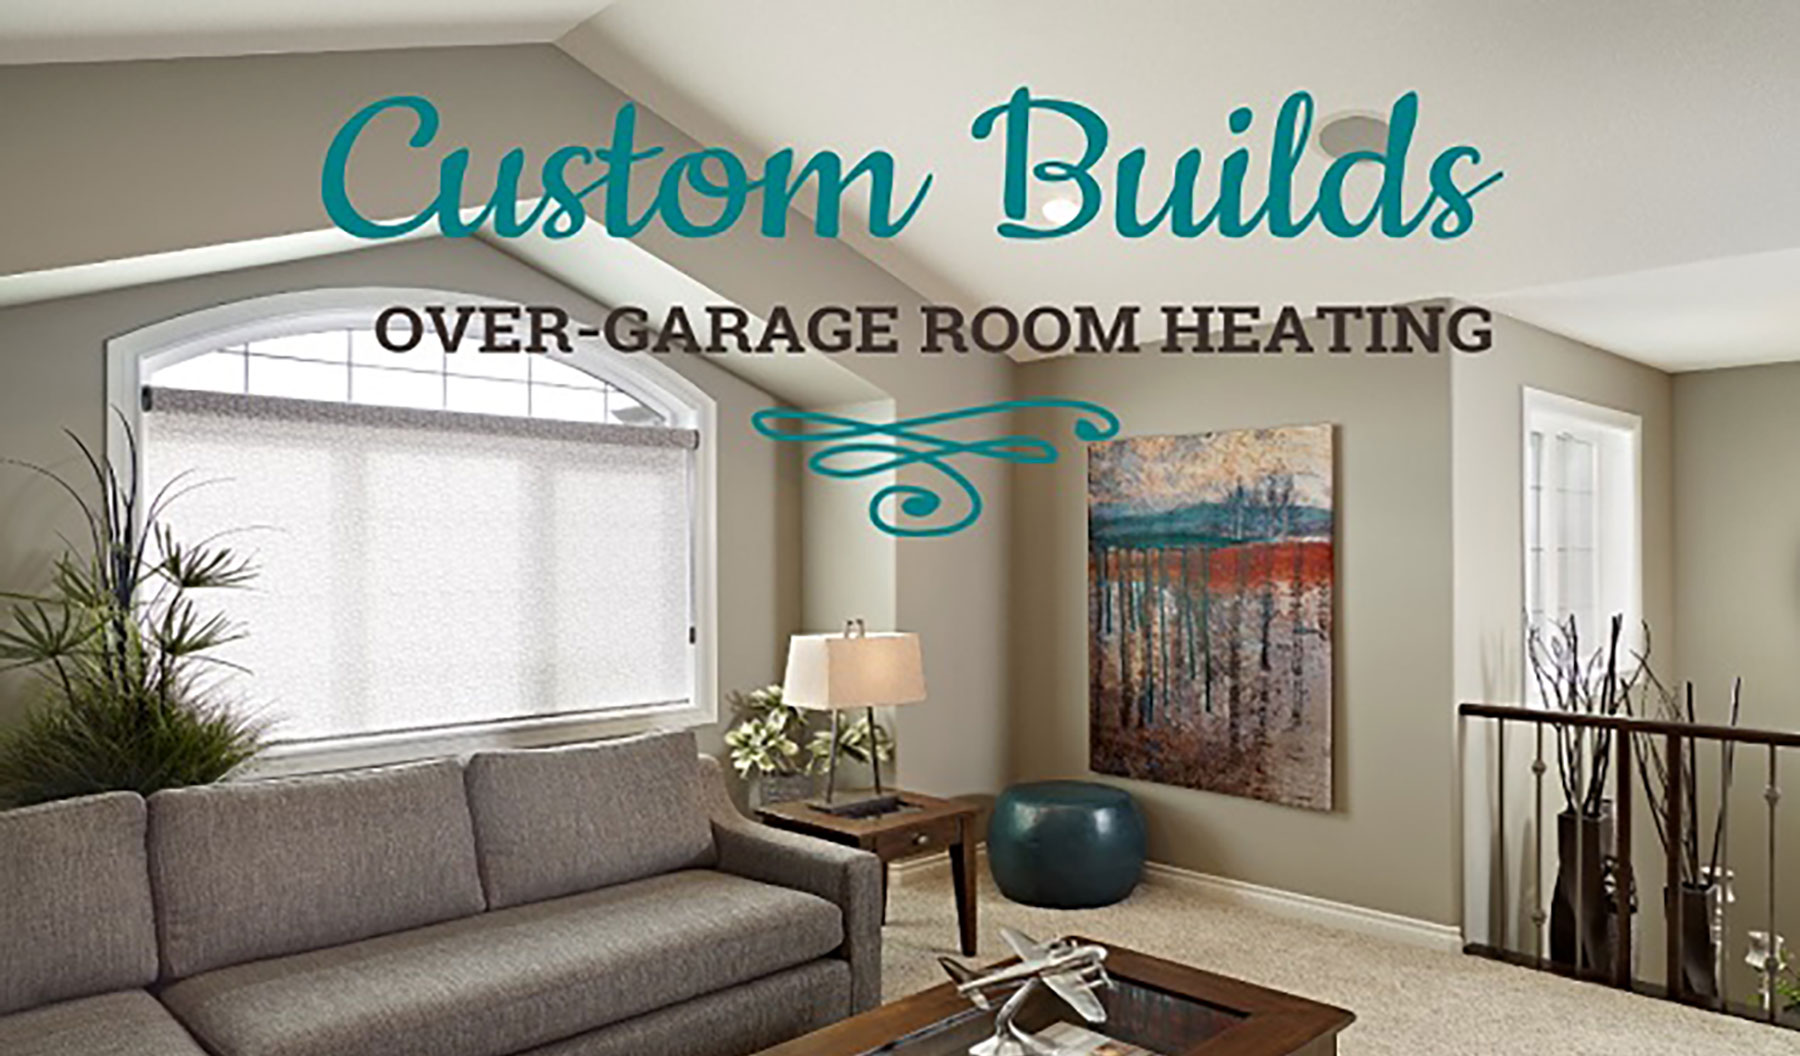 Tremendous Custom Builds Tips For Over Garage Room Heating New Home Download Free Architecture Designs Viewormadebymaigaardcom